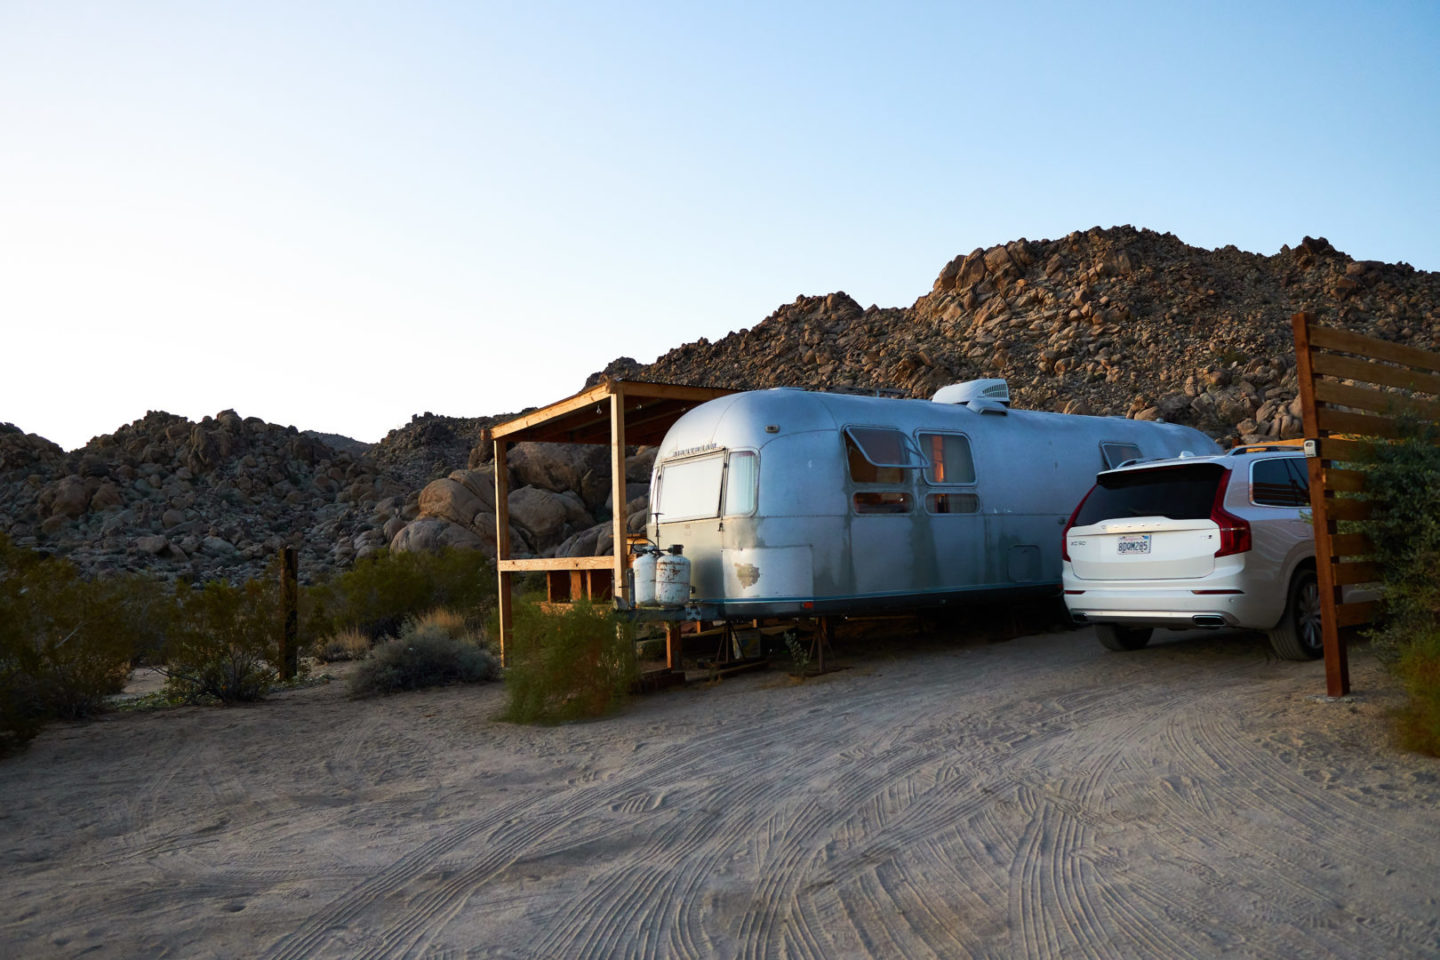 USA Mietwagen Guide: Airstream Trailer im Joshua Tree Nationalpark.